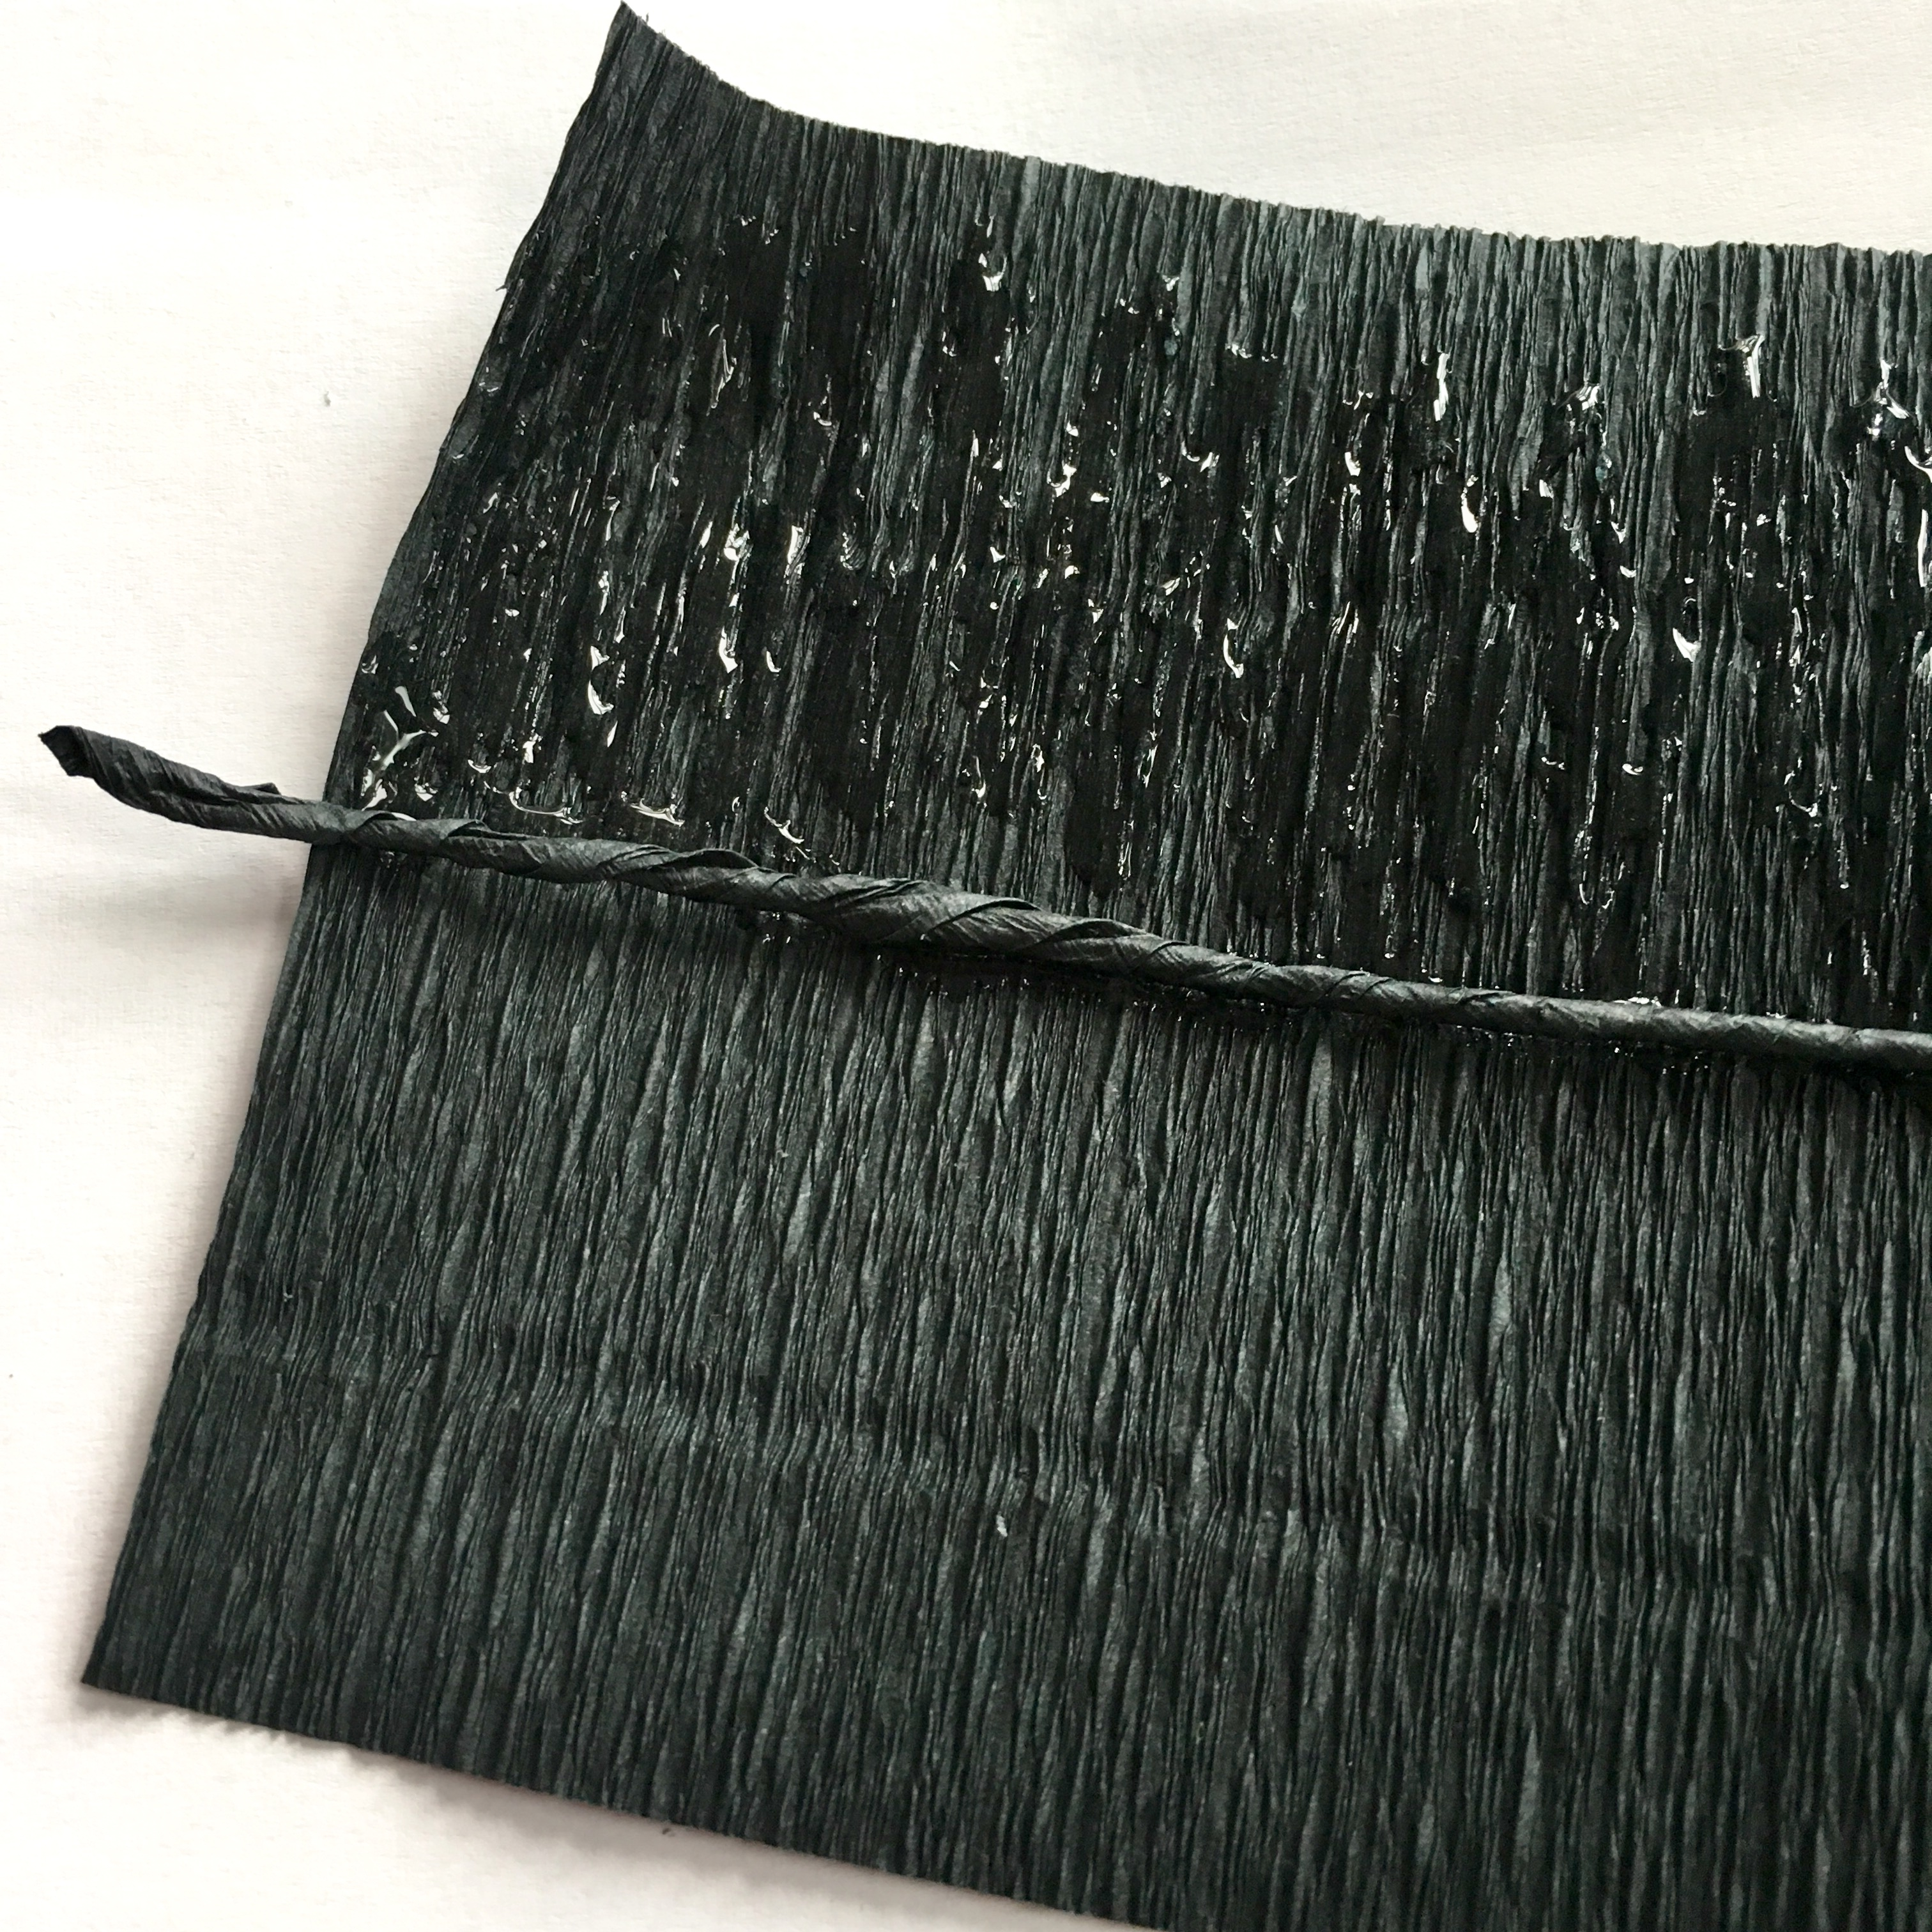 gluing string of twisted crepe paper in the middle of black crepe paper - making more stamens